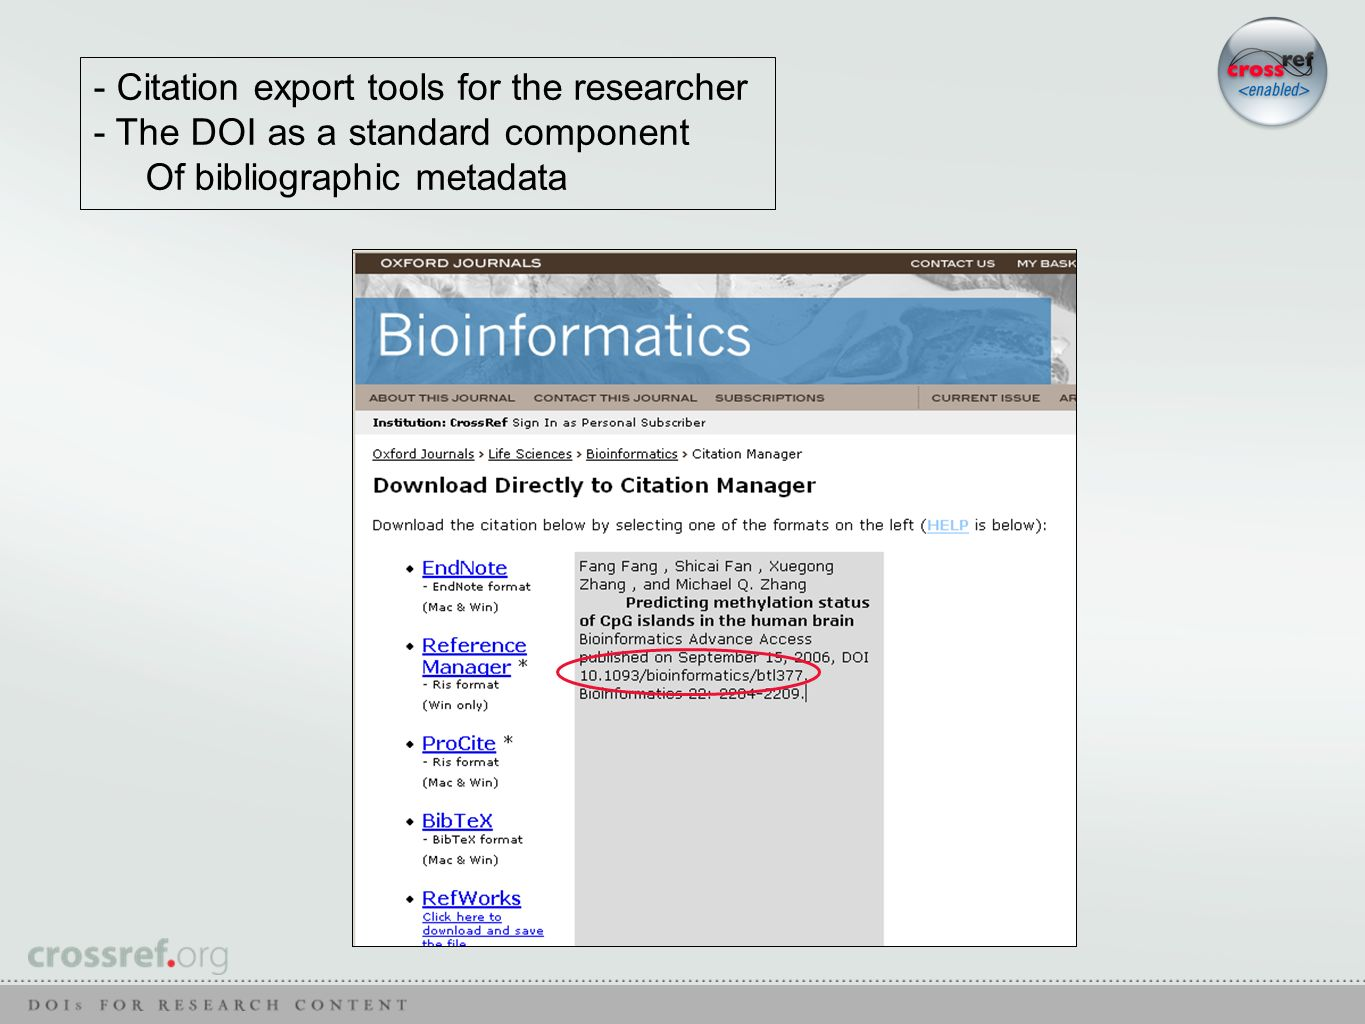 - Citation export tools for the researcher - The DOI as a standard component Of bibliographic metadata